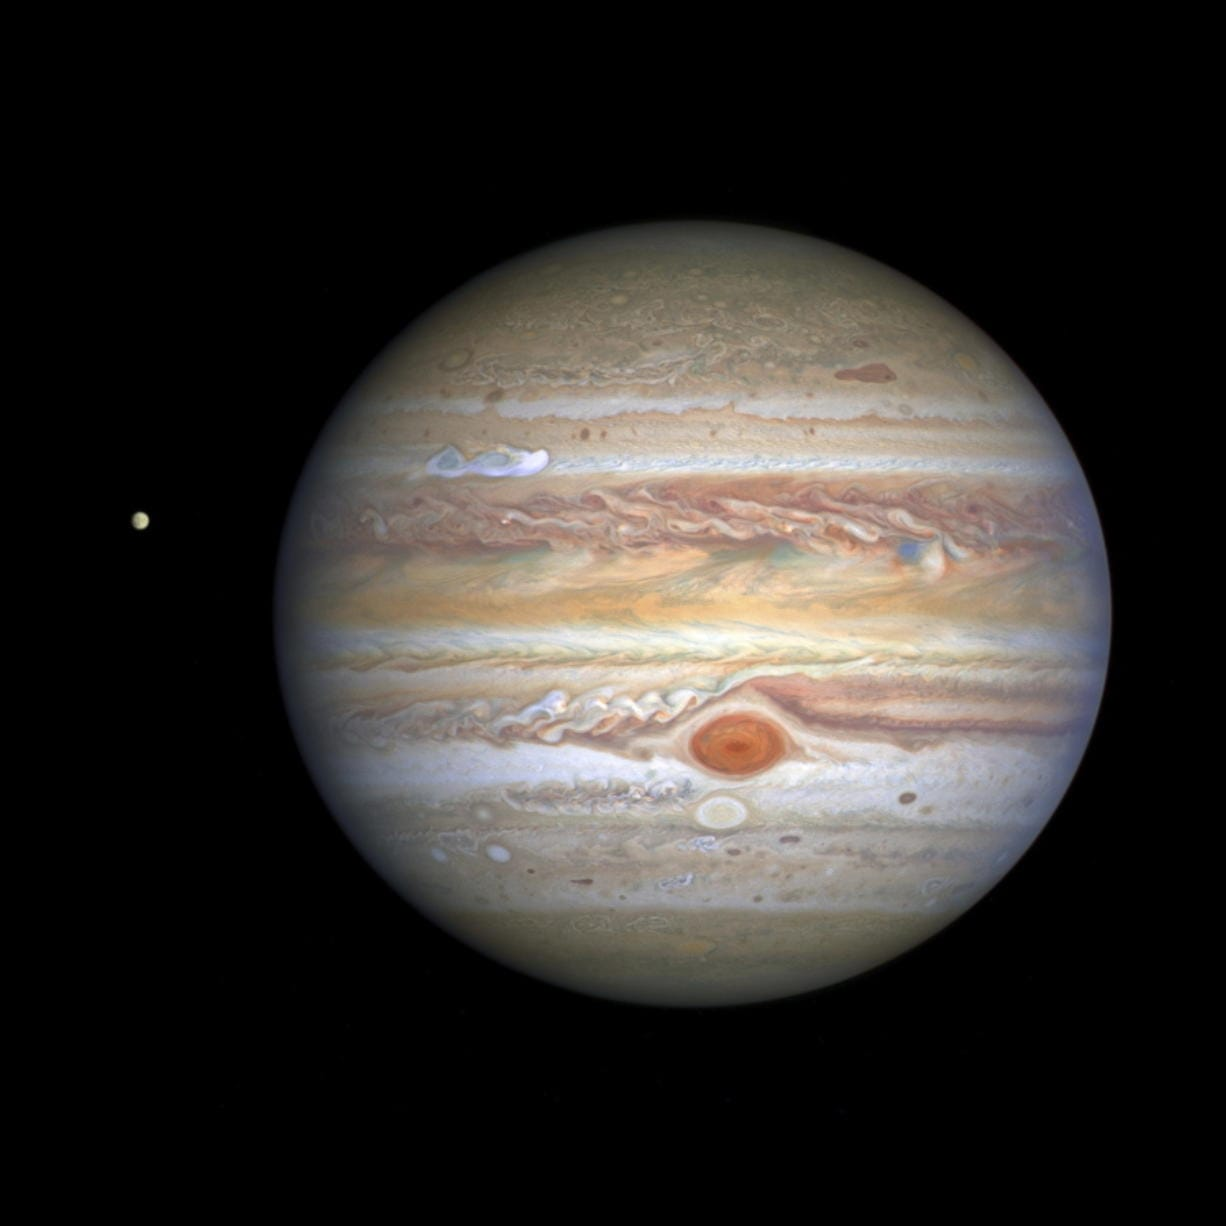 This Aug. 25 image captured by NASA's Hubble Space Telescope shows the planet Jupiter and one of its moons, Europa, at left, when the planet was 406 million miles from Earth. (NASA, ESA, STScI, A.